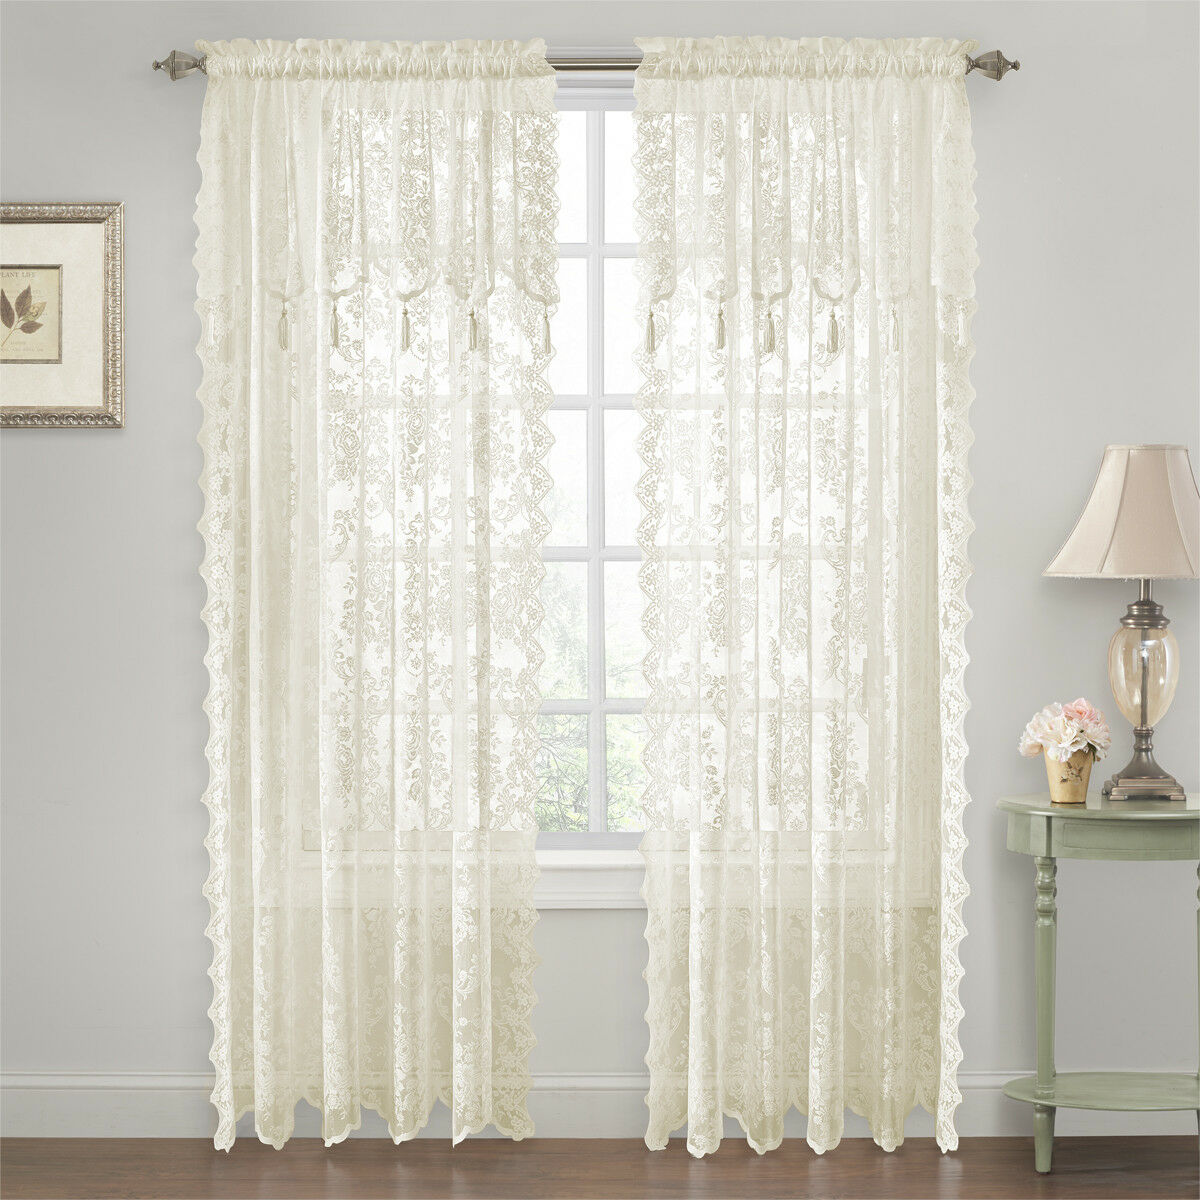 Carly Lace Curtain Panel With Attached Valance With Tassels Curtains Pelmets Home Furniture Diy Plastpath Com Br